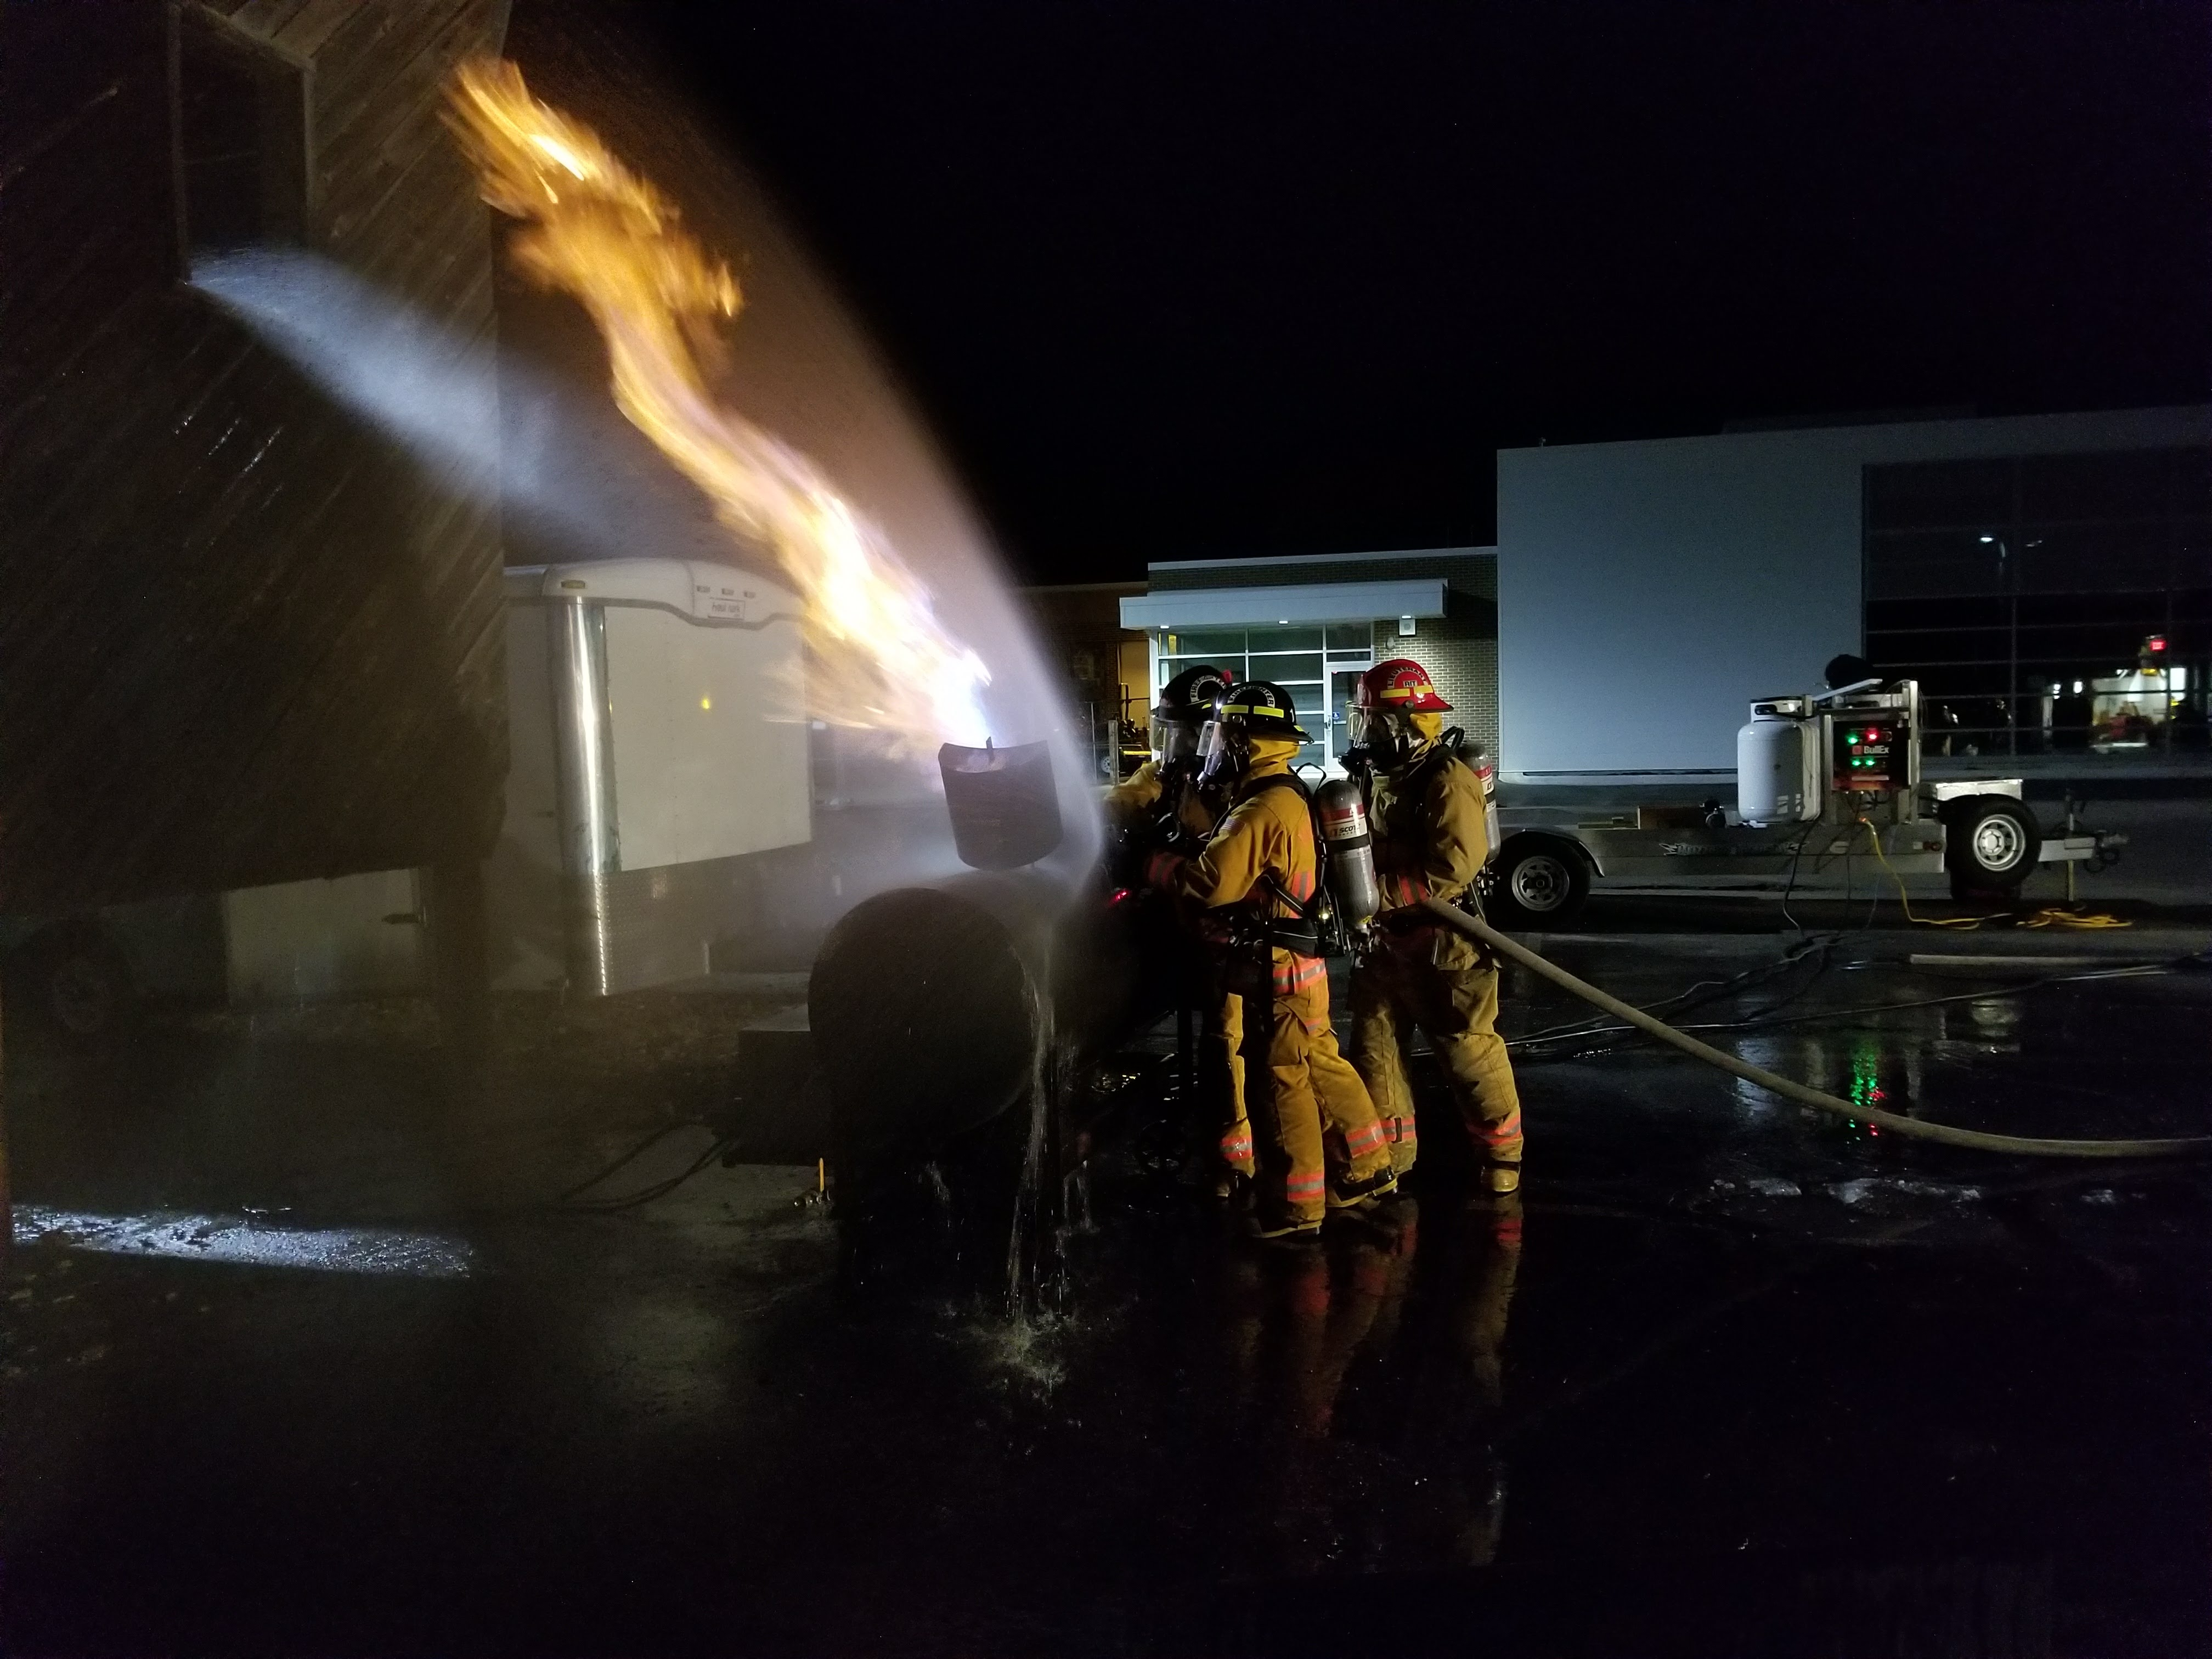 Firefighters worth together to extinguish a flame.